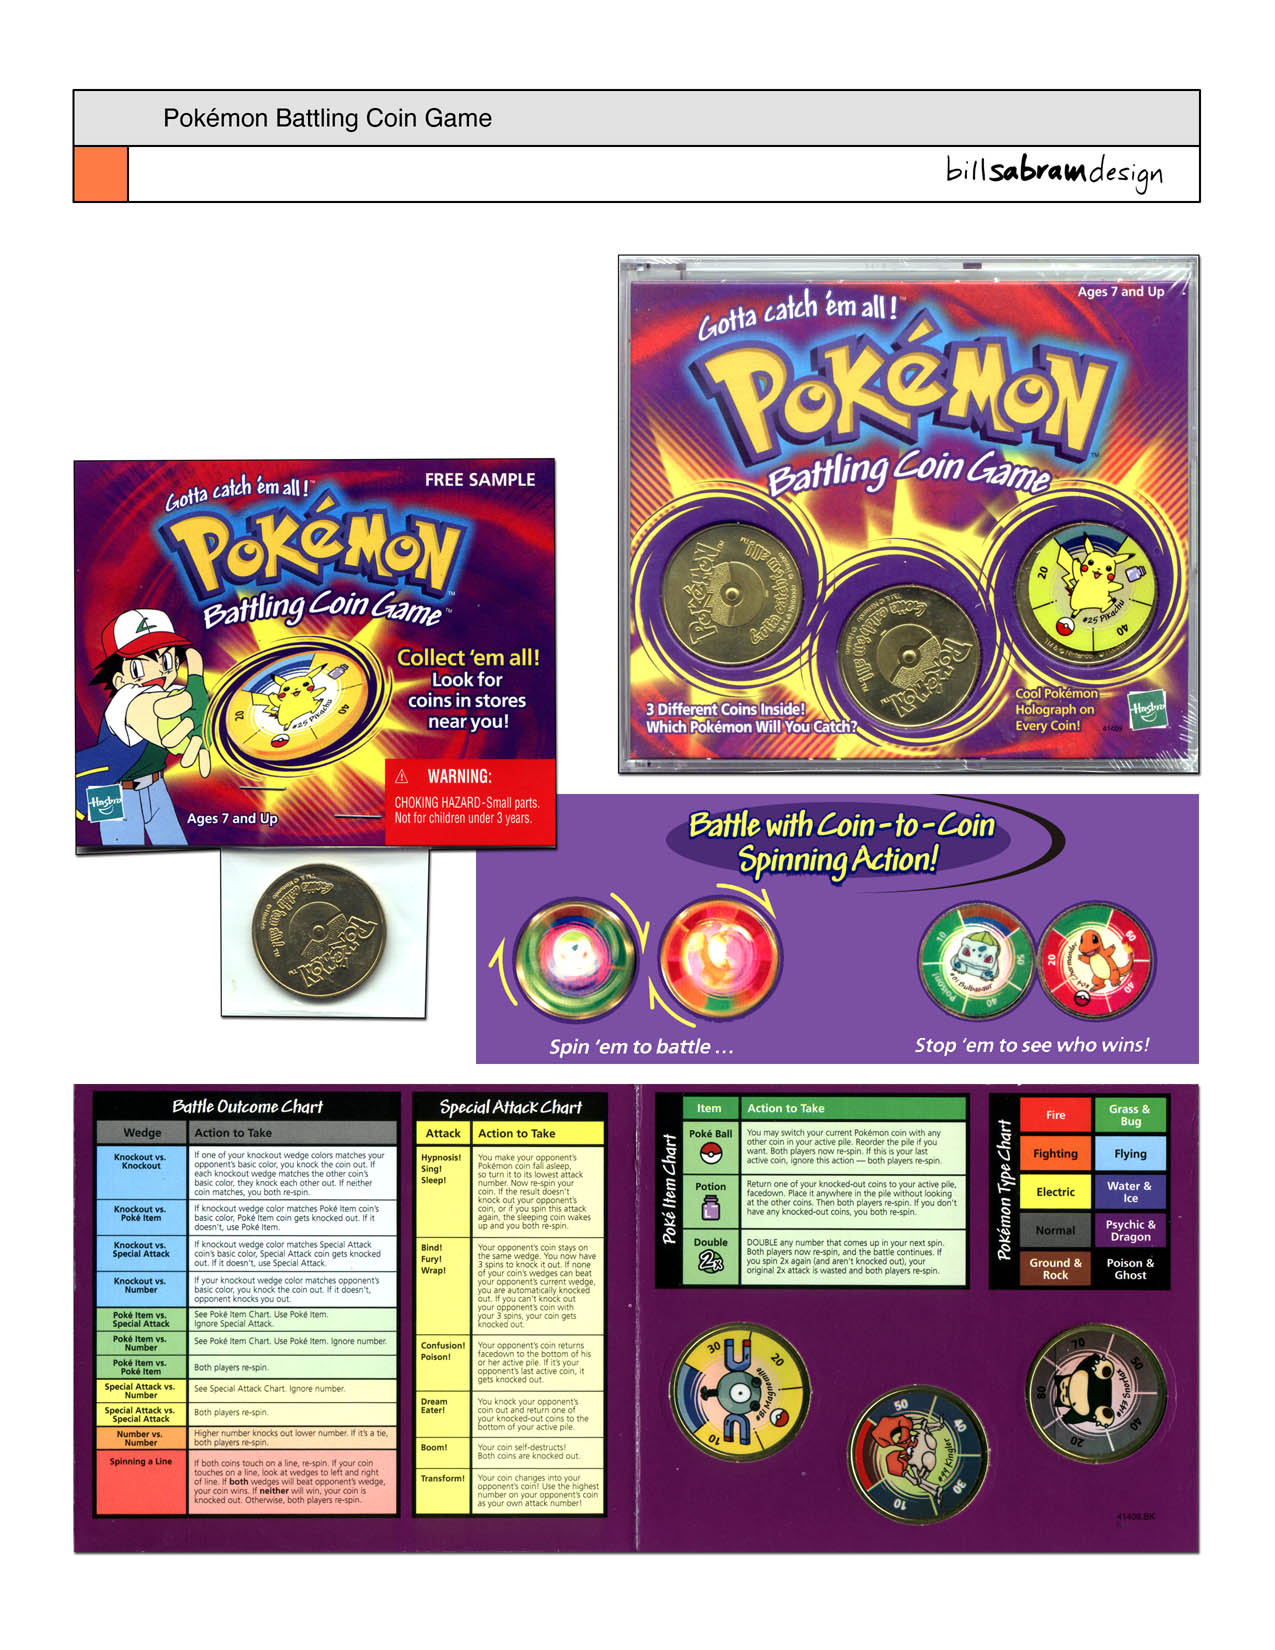 Patented spinning coin gameplay. Packaged in a CD-ROM jewel case. Which Pokémon will you catch? Build your team of coins and challenge a friend. You and your rival Pokémon Trainer flip over the top coin and spin them like top. Now - stop 'em! Where they touch determines the battle outcome. Every coin features a color foil sticker. Full set includes 150 different coins in 10 different categories. Game includes a color-coded chart to teach the rules.